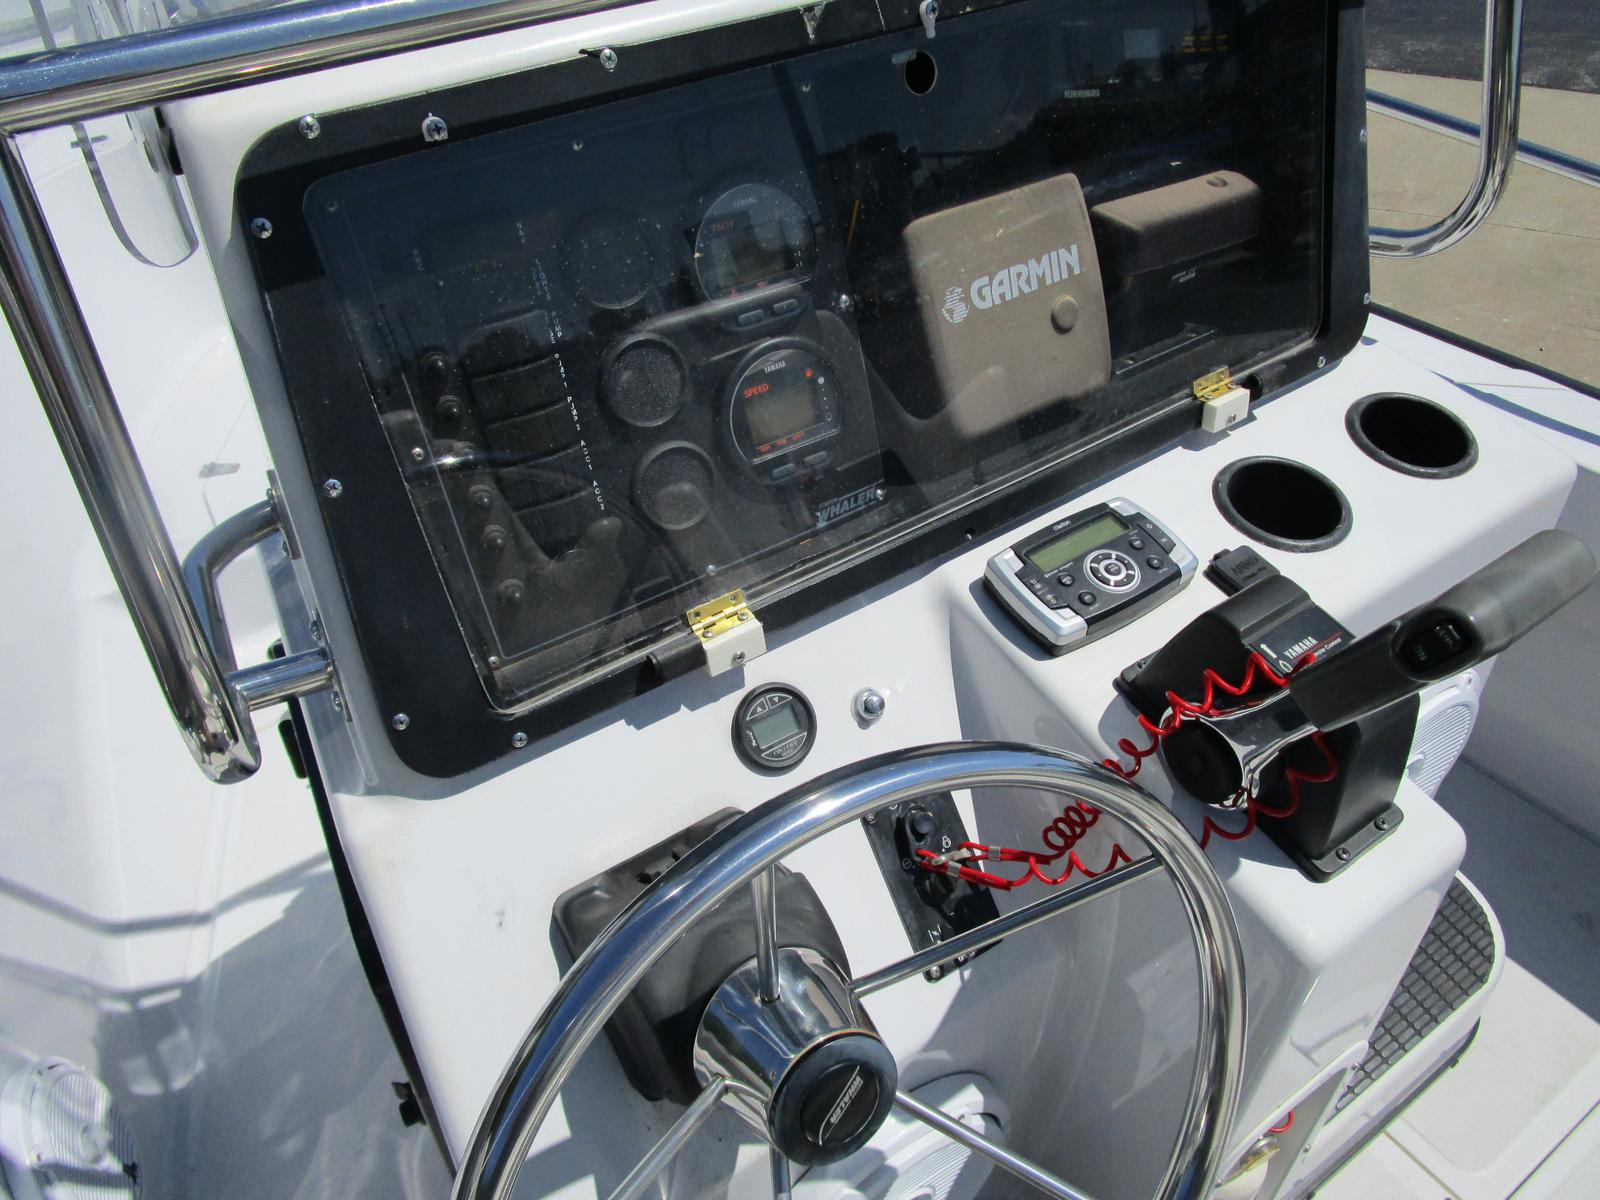 1996 Boston Whaler boat for sale, model of the boat is 190 Outrage & Image # 4 of 9